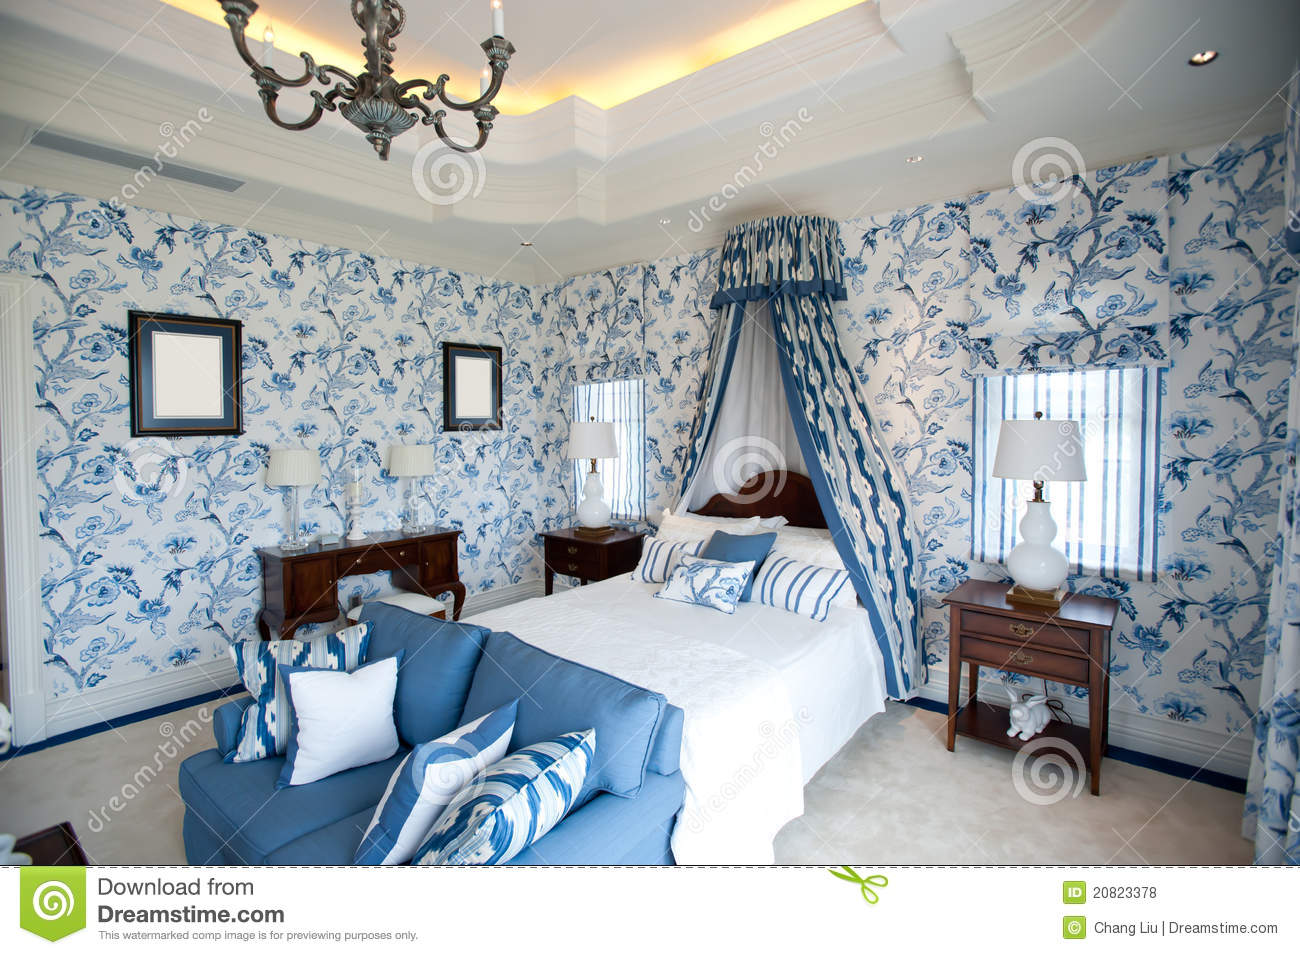 Bedroom with blue flower wallpaper royalty free stock photos image 20823378 - Beautiful snooze bedroom suites packing comfort in style ...